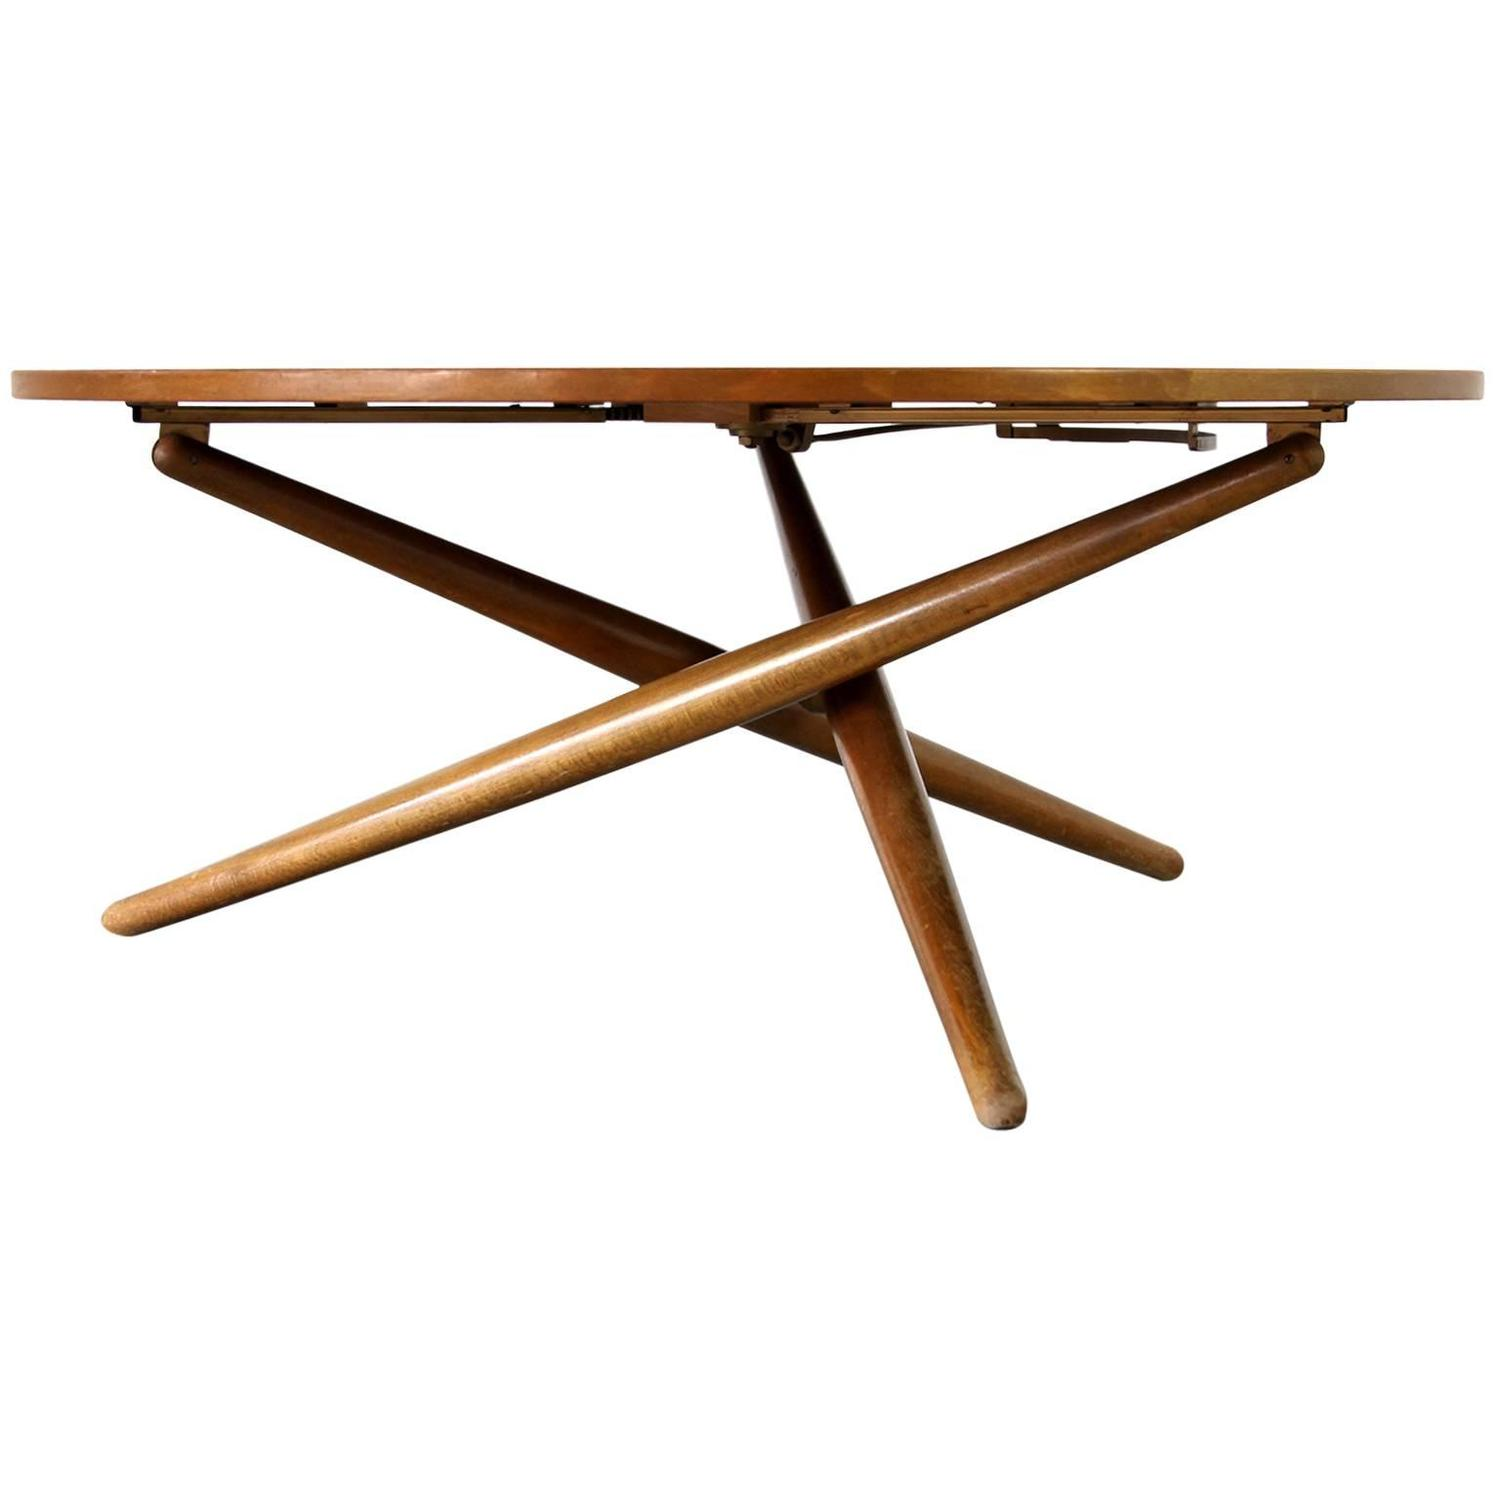 Height Adjustable Coffee Table By Jurg Bally For Wohnhilfe